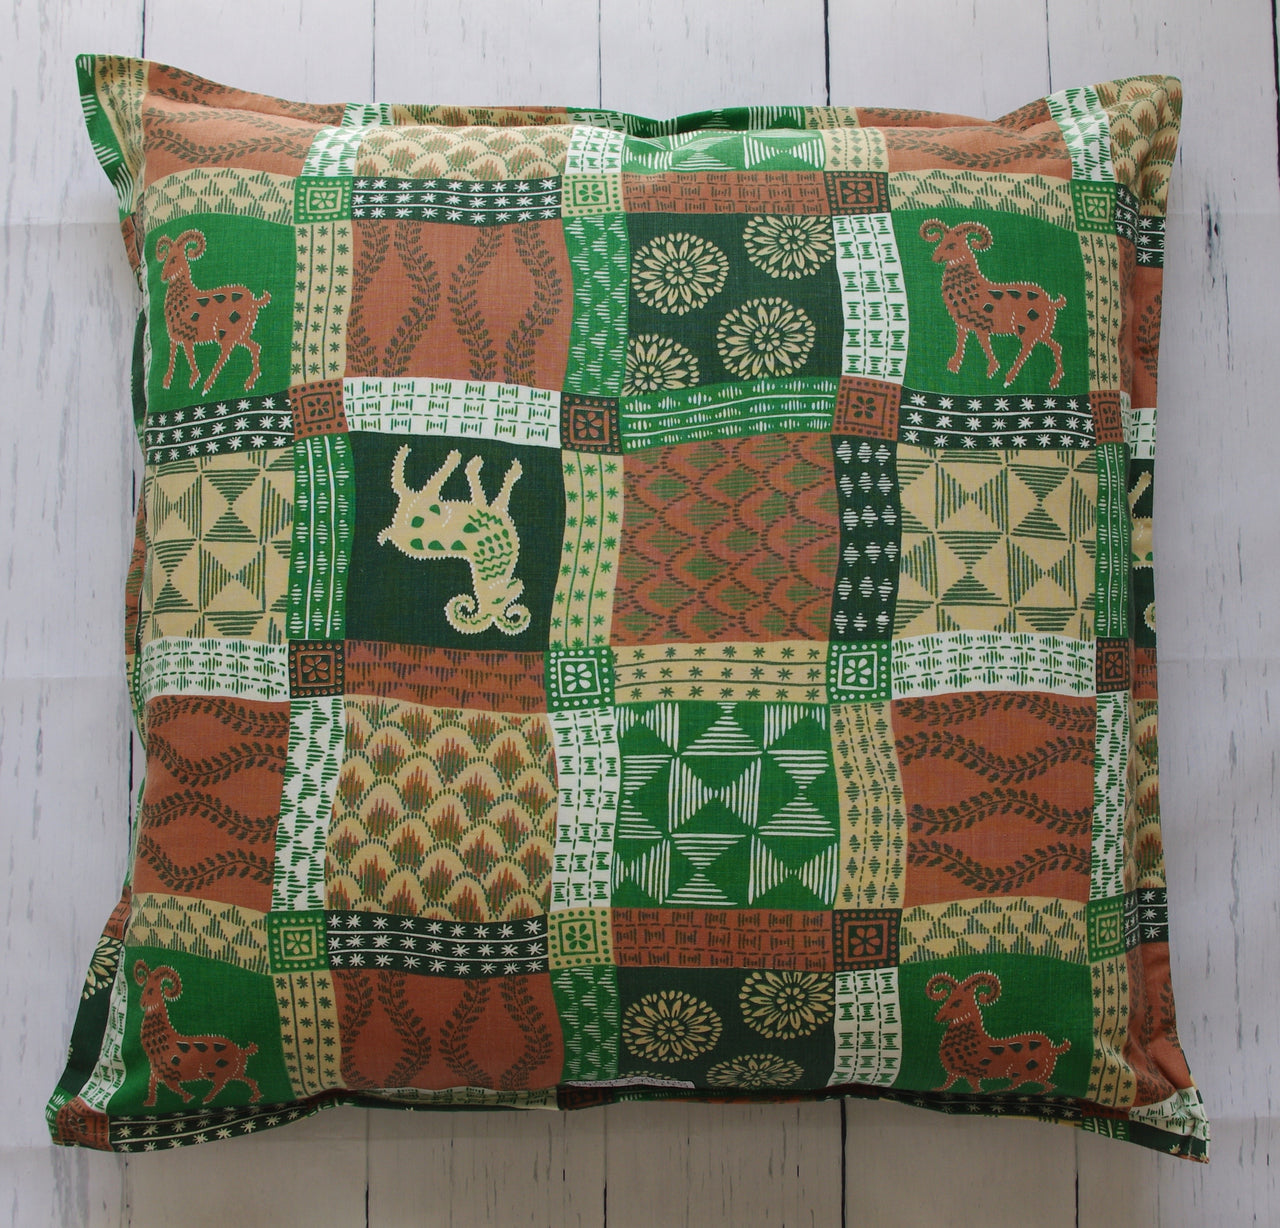 eco-friendly-sustainable-repurposed-handmade-home-decor-floor-pillow-boho-folky-goat-printed-floor-pillow-front